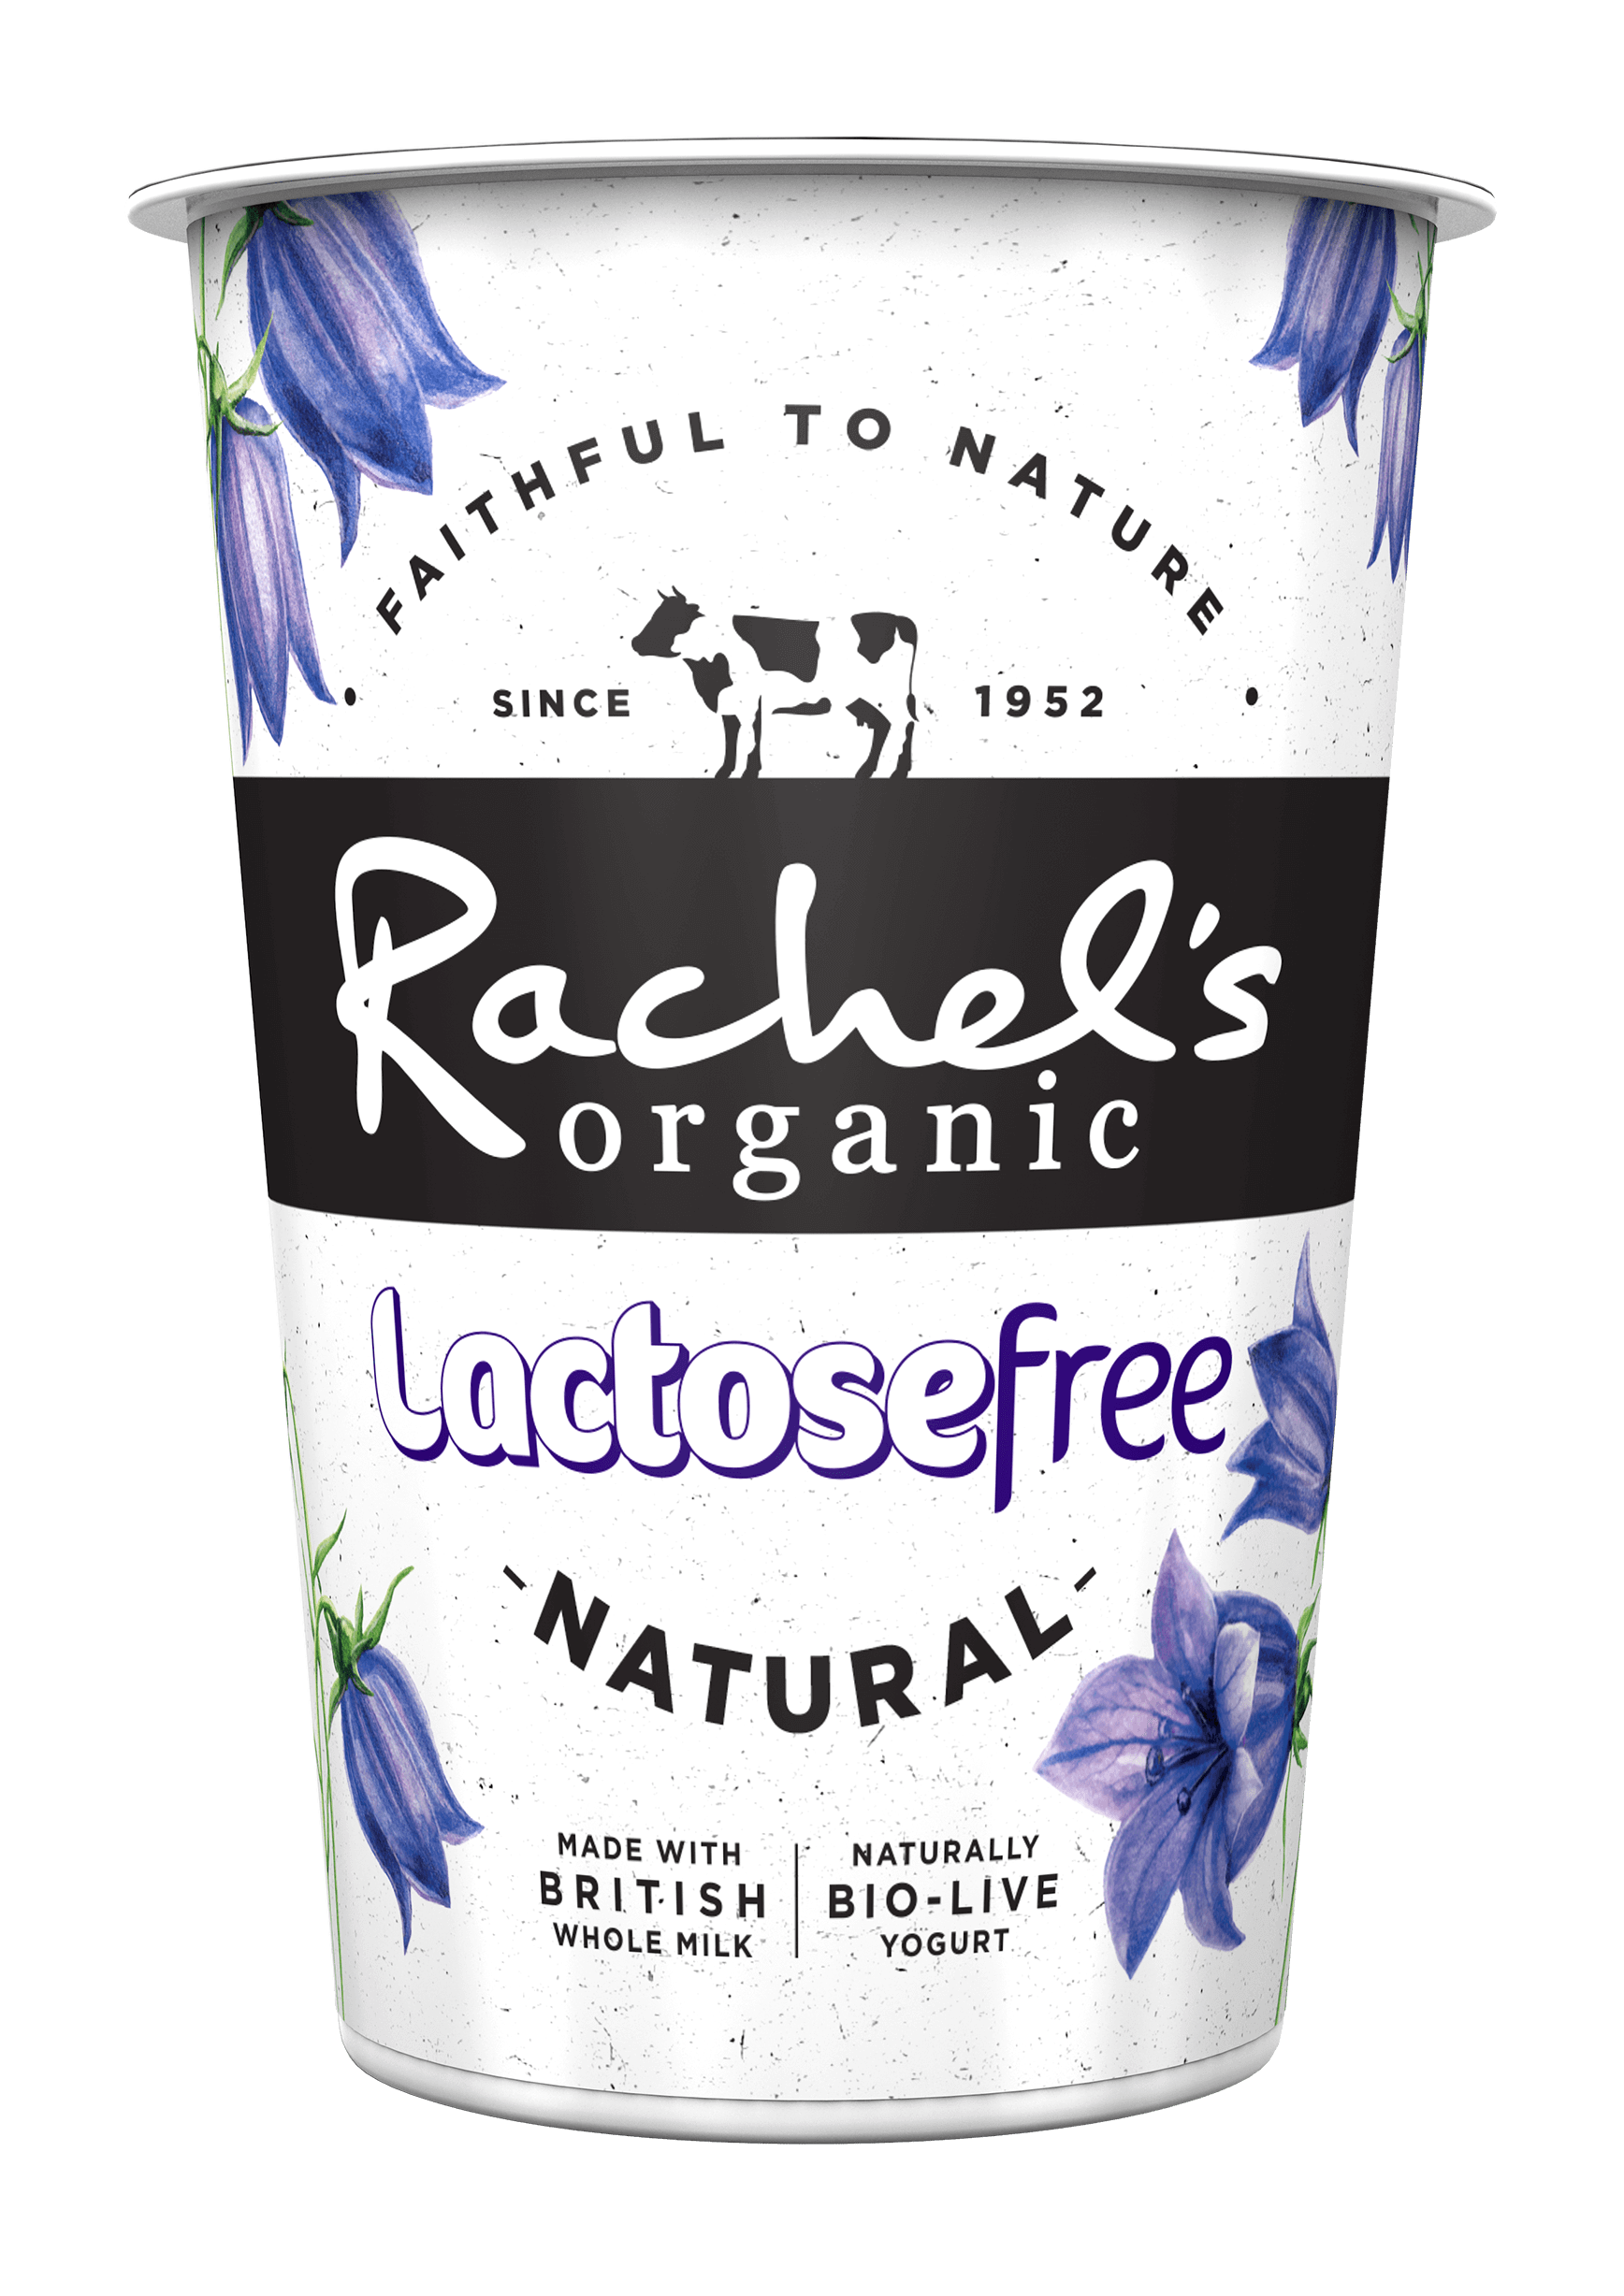 https://www.rachelsorganic.co.uk/wp-content/uploads/2019/12/5021638000540-3D-RACHELS-450G-POT-LACTOSE-FREE-NATURAL.png